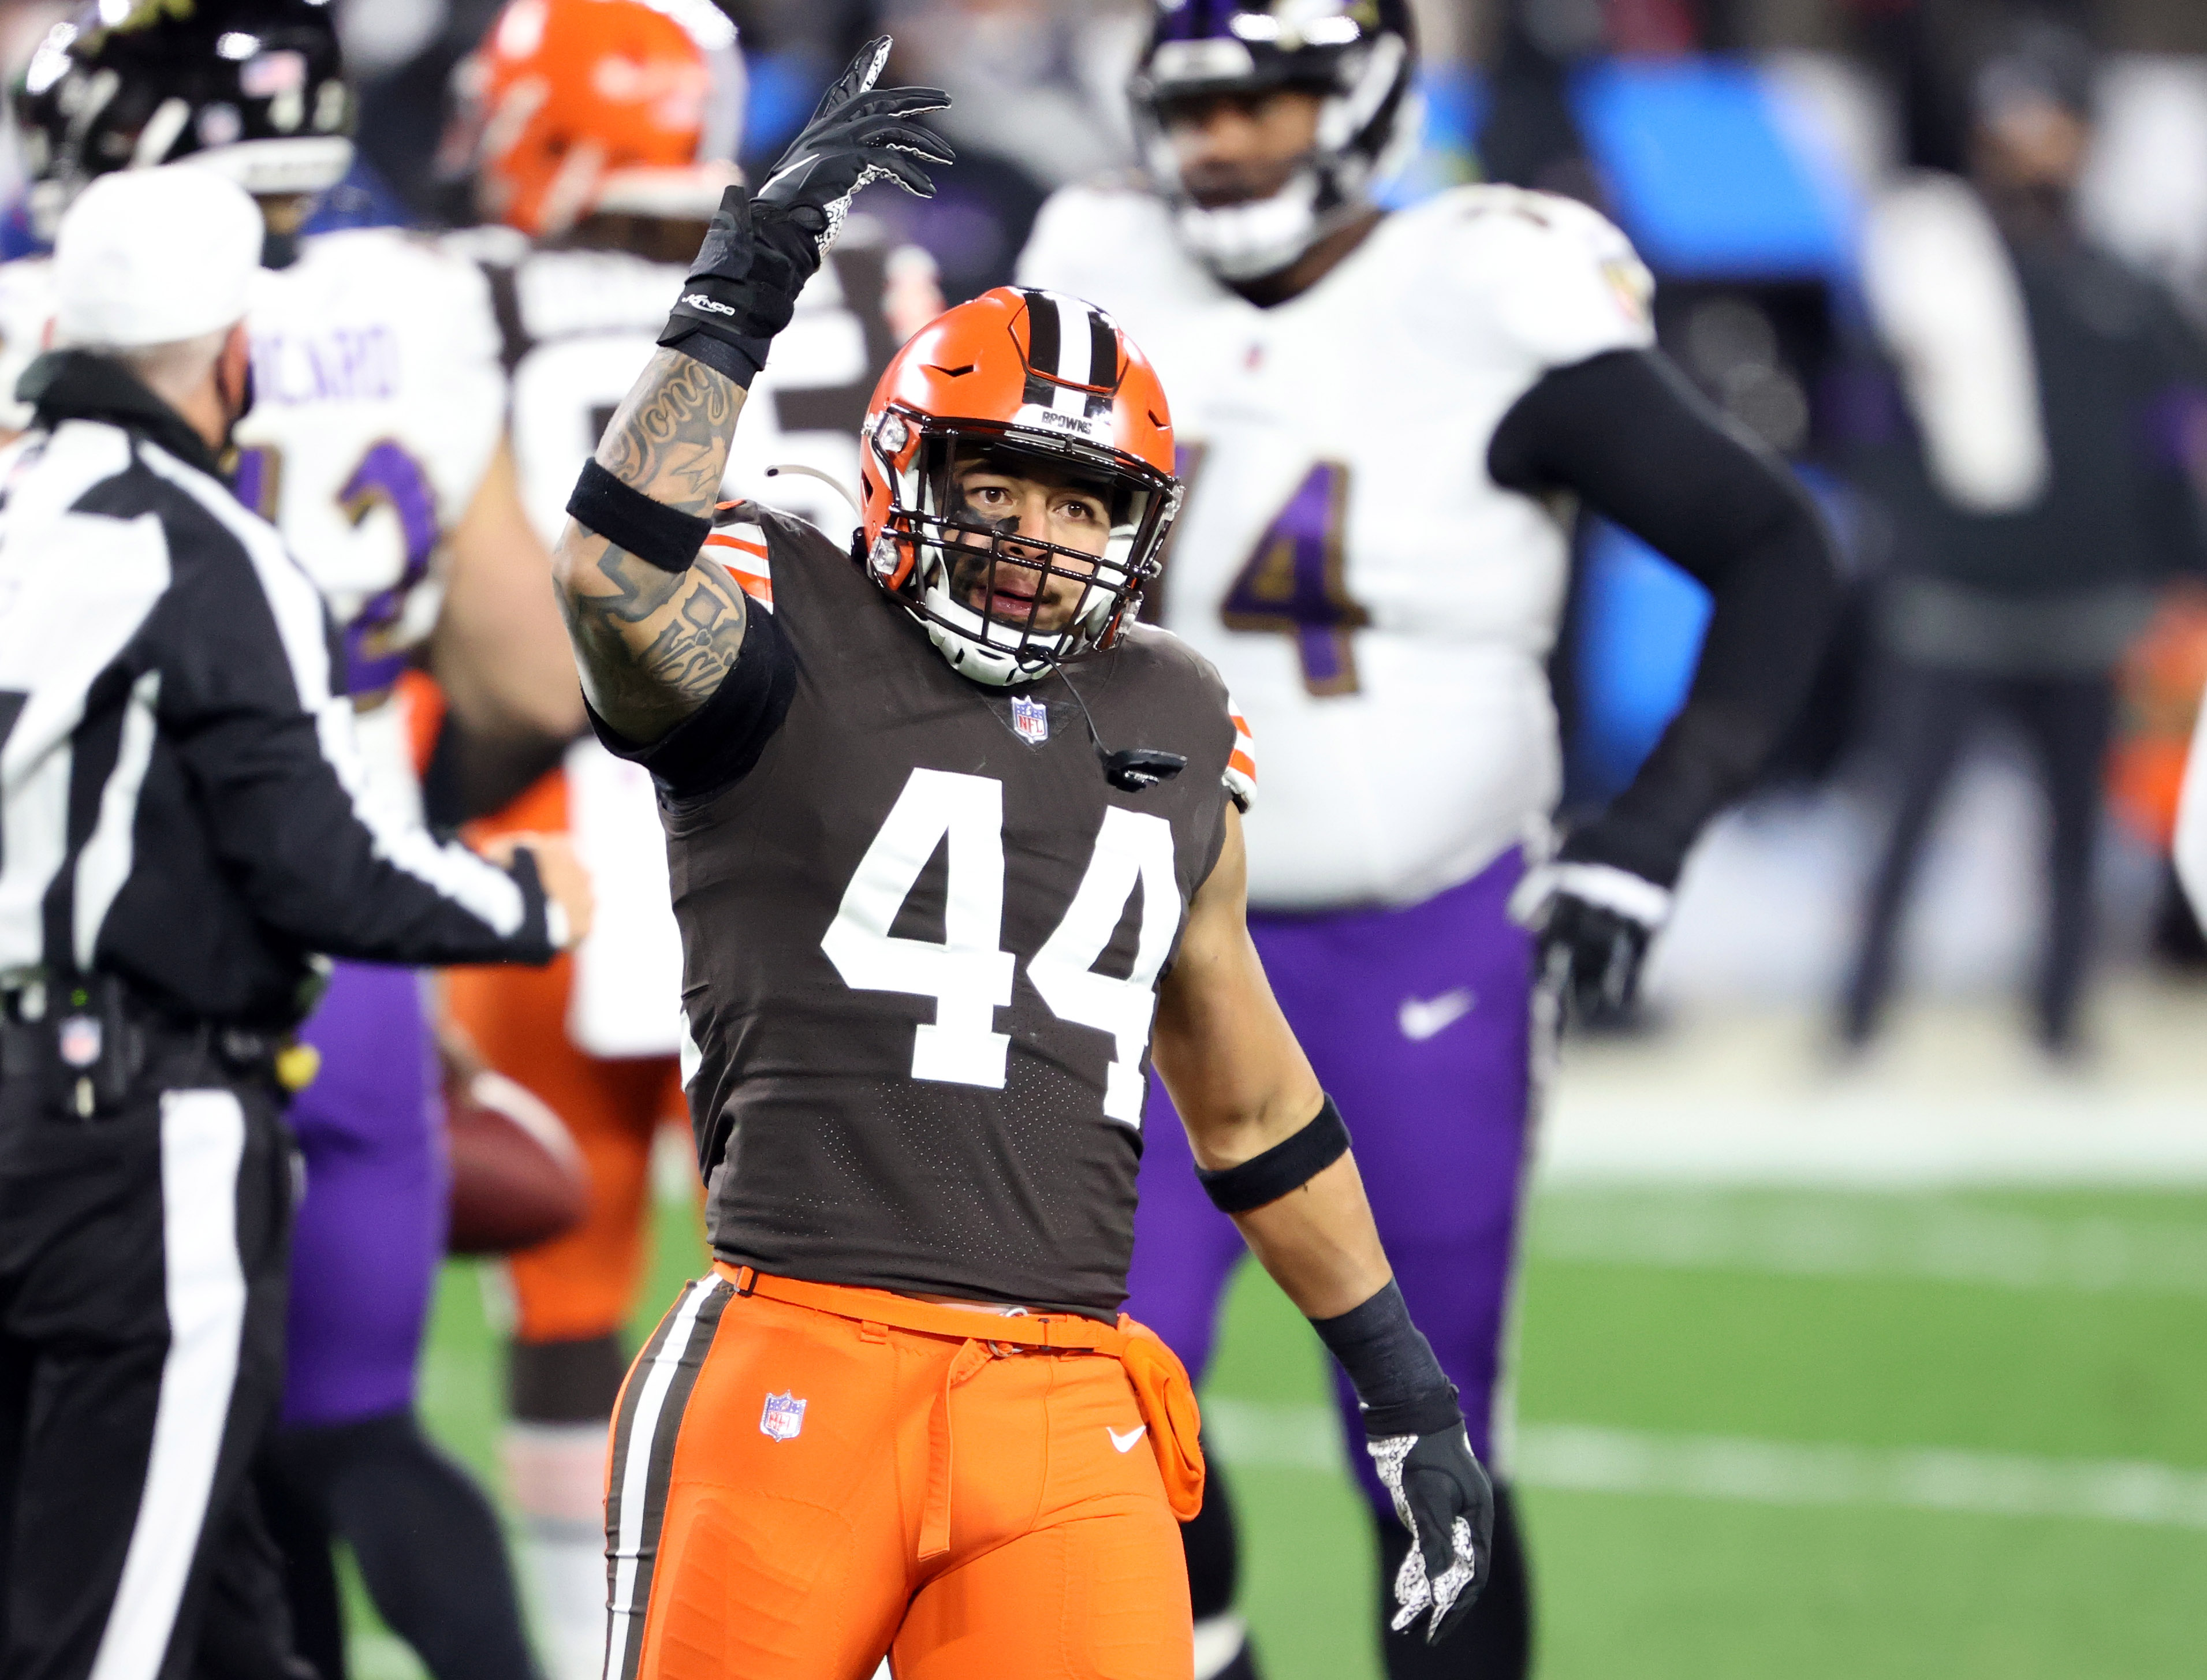 Browns defensive player grades vs. the Ravens: Who was elite, average and  replaceable in Week 14? - cleveland.com